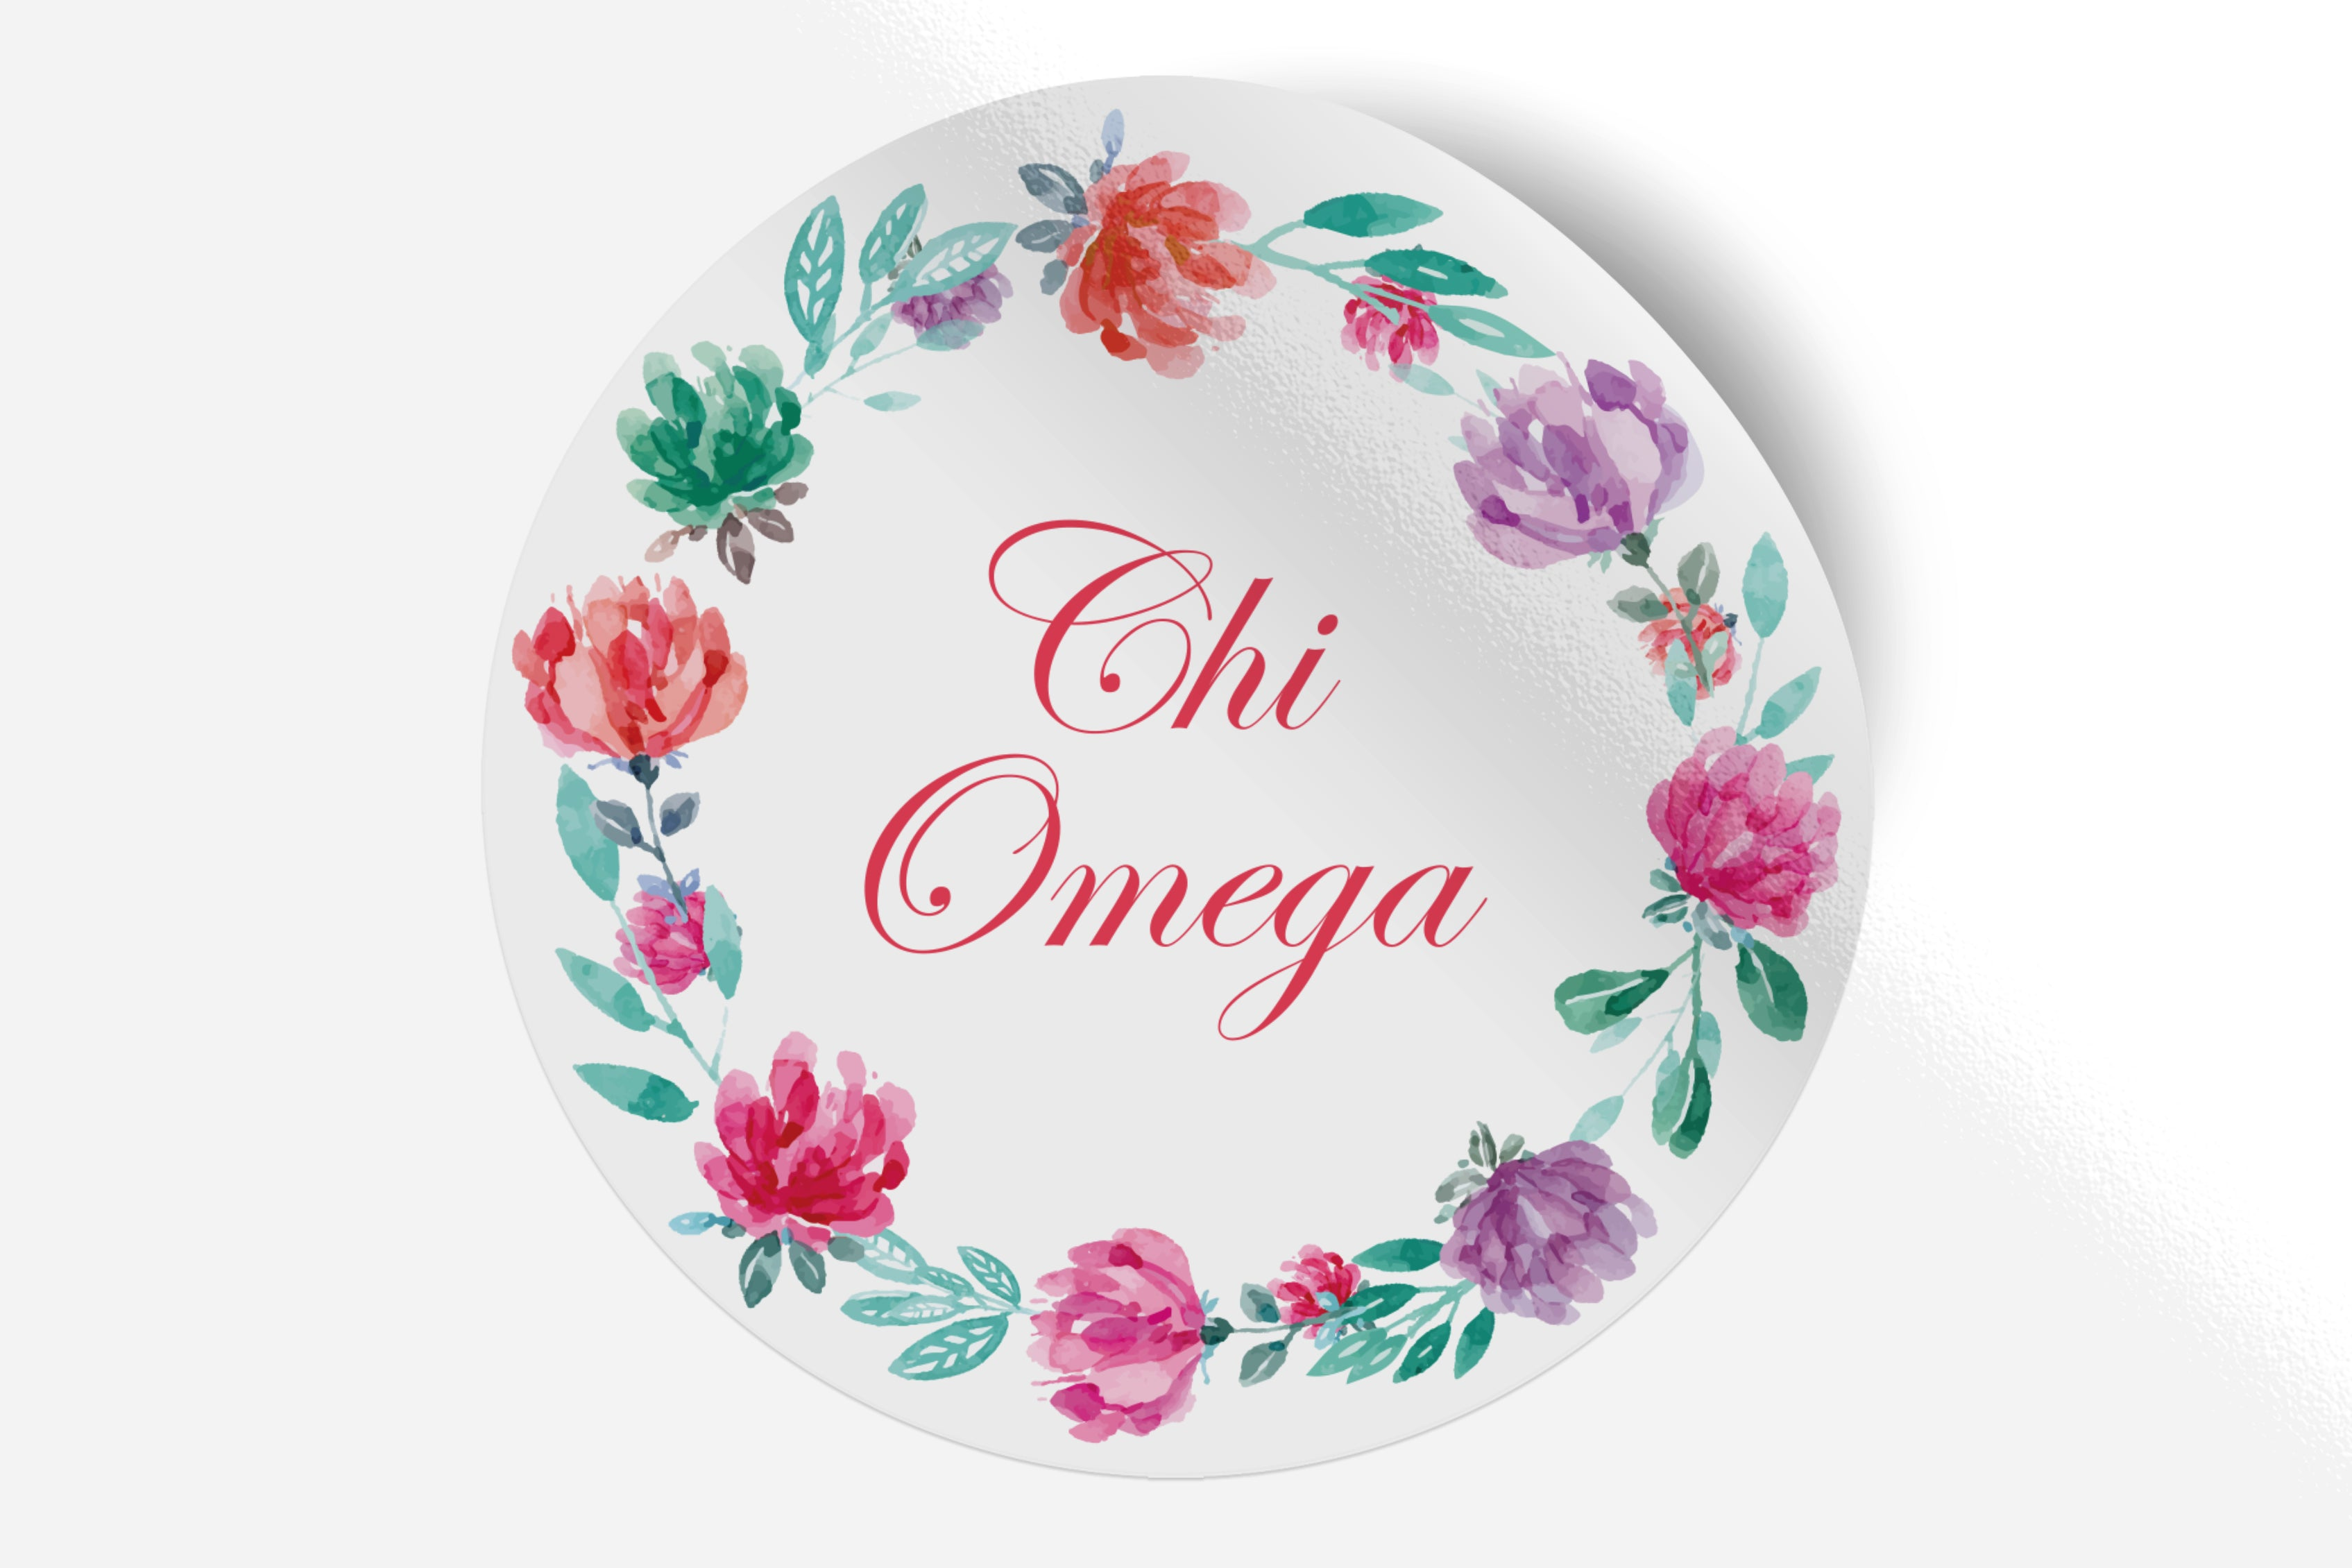 "Chi Omega - Watercolor Floral - 5"" Round Sticker"